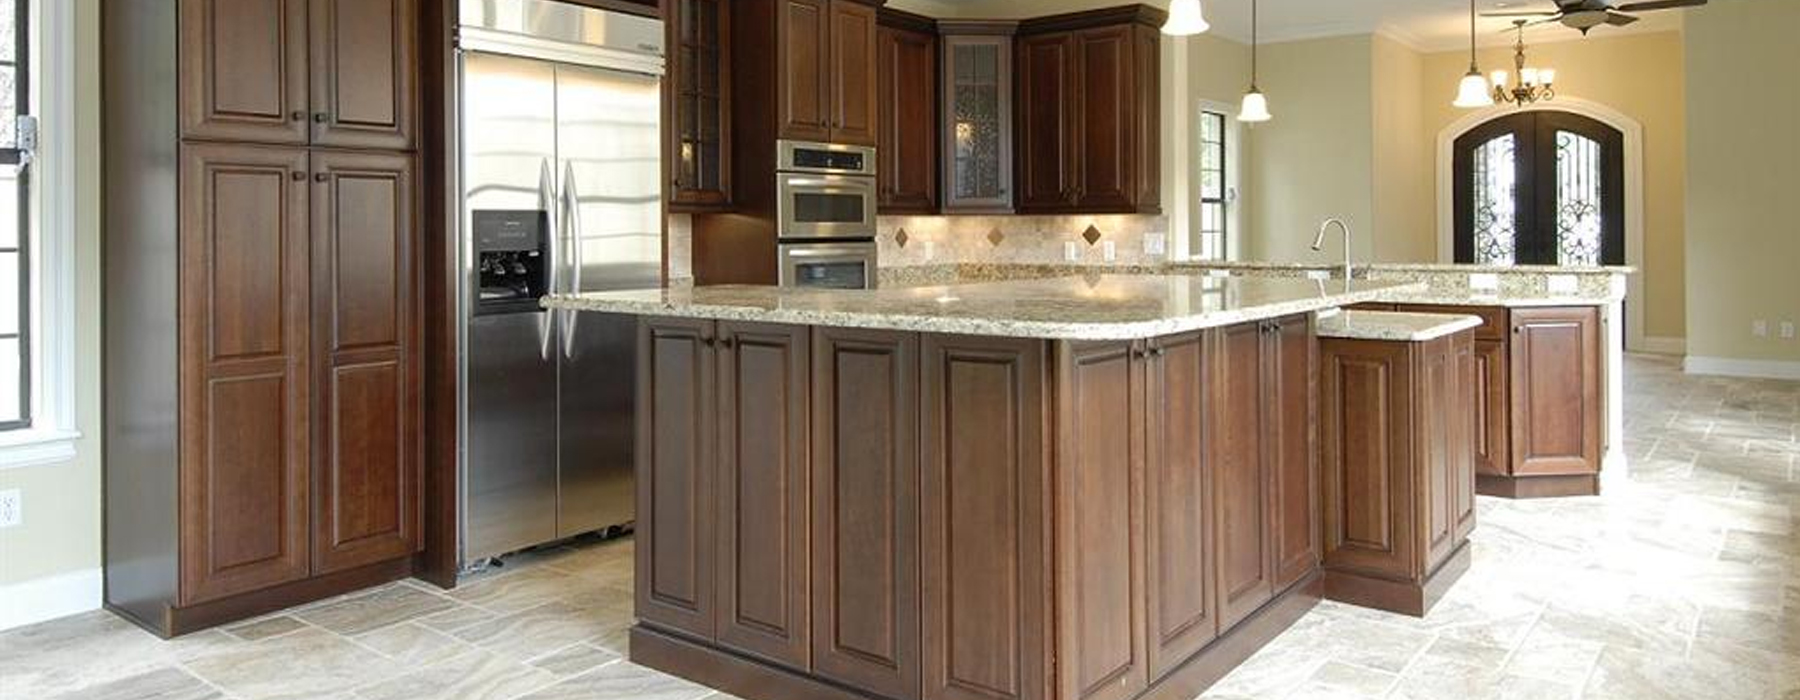 The Homestyles Group Bath Kitchen Remodeling Orlando